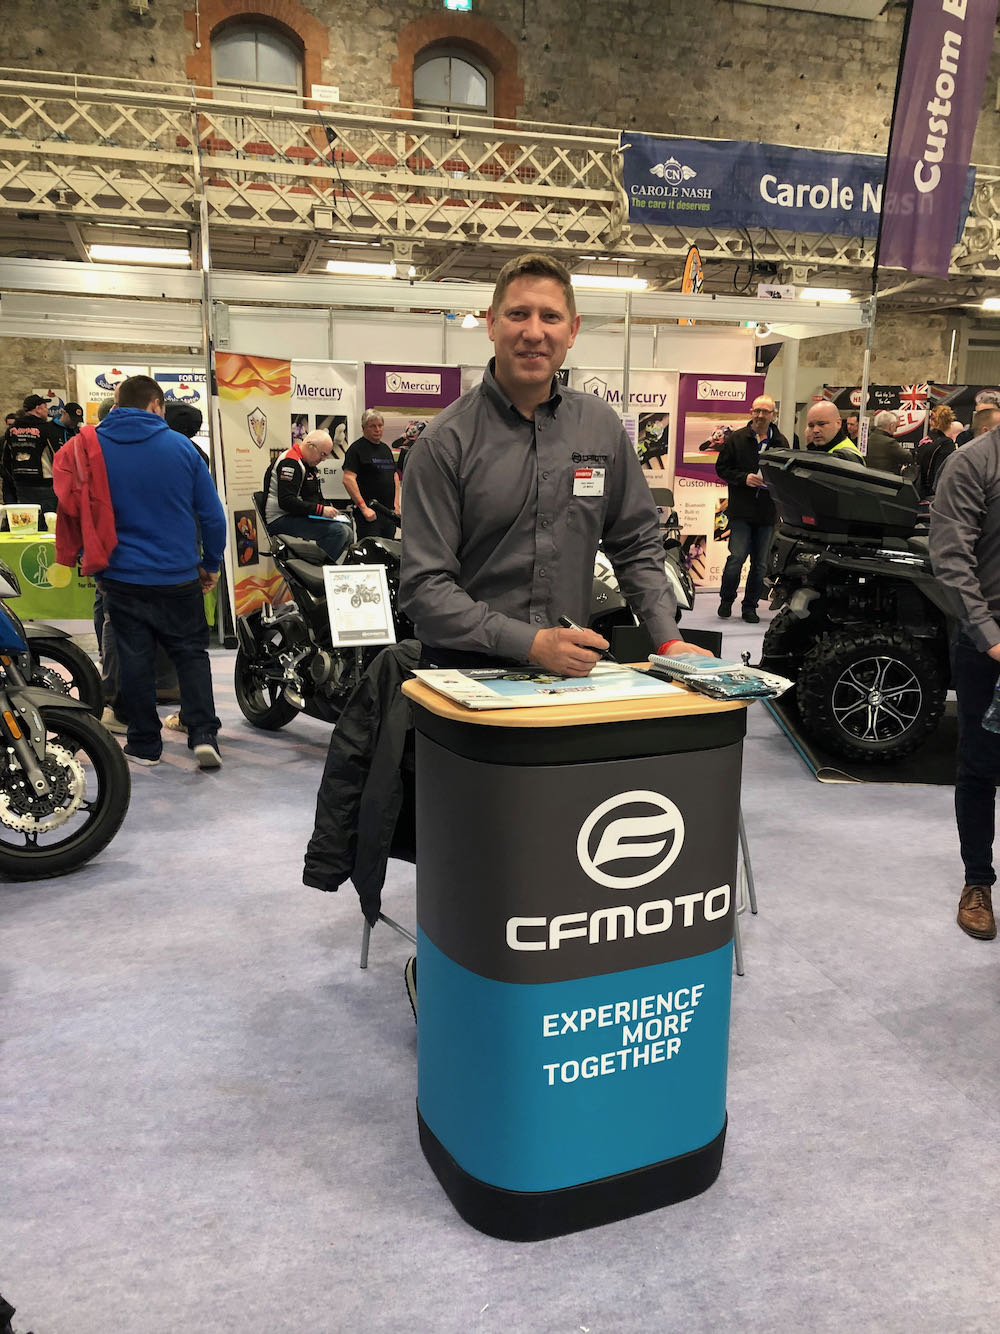 Ireland Motorcycle and Scooter Show